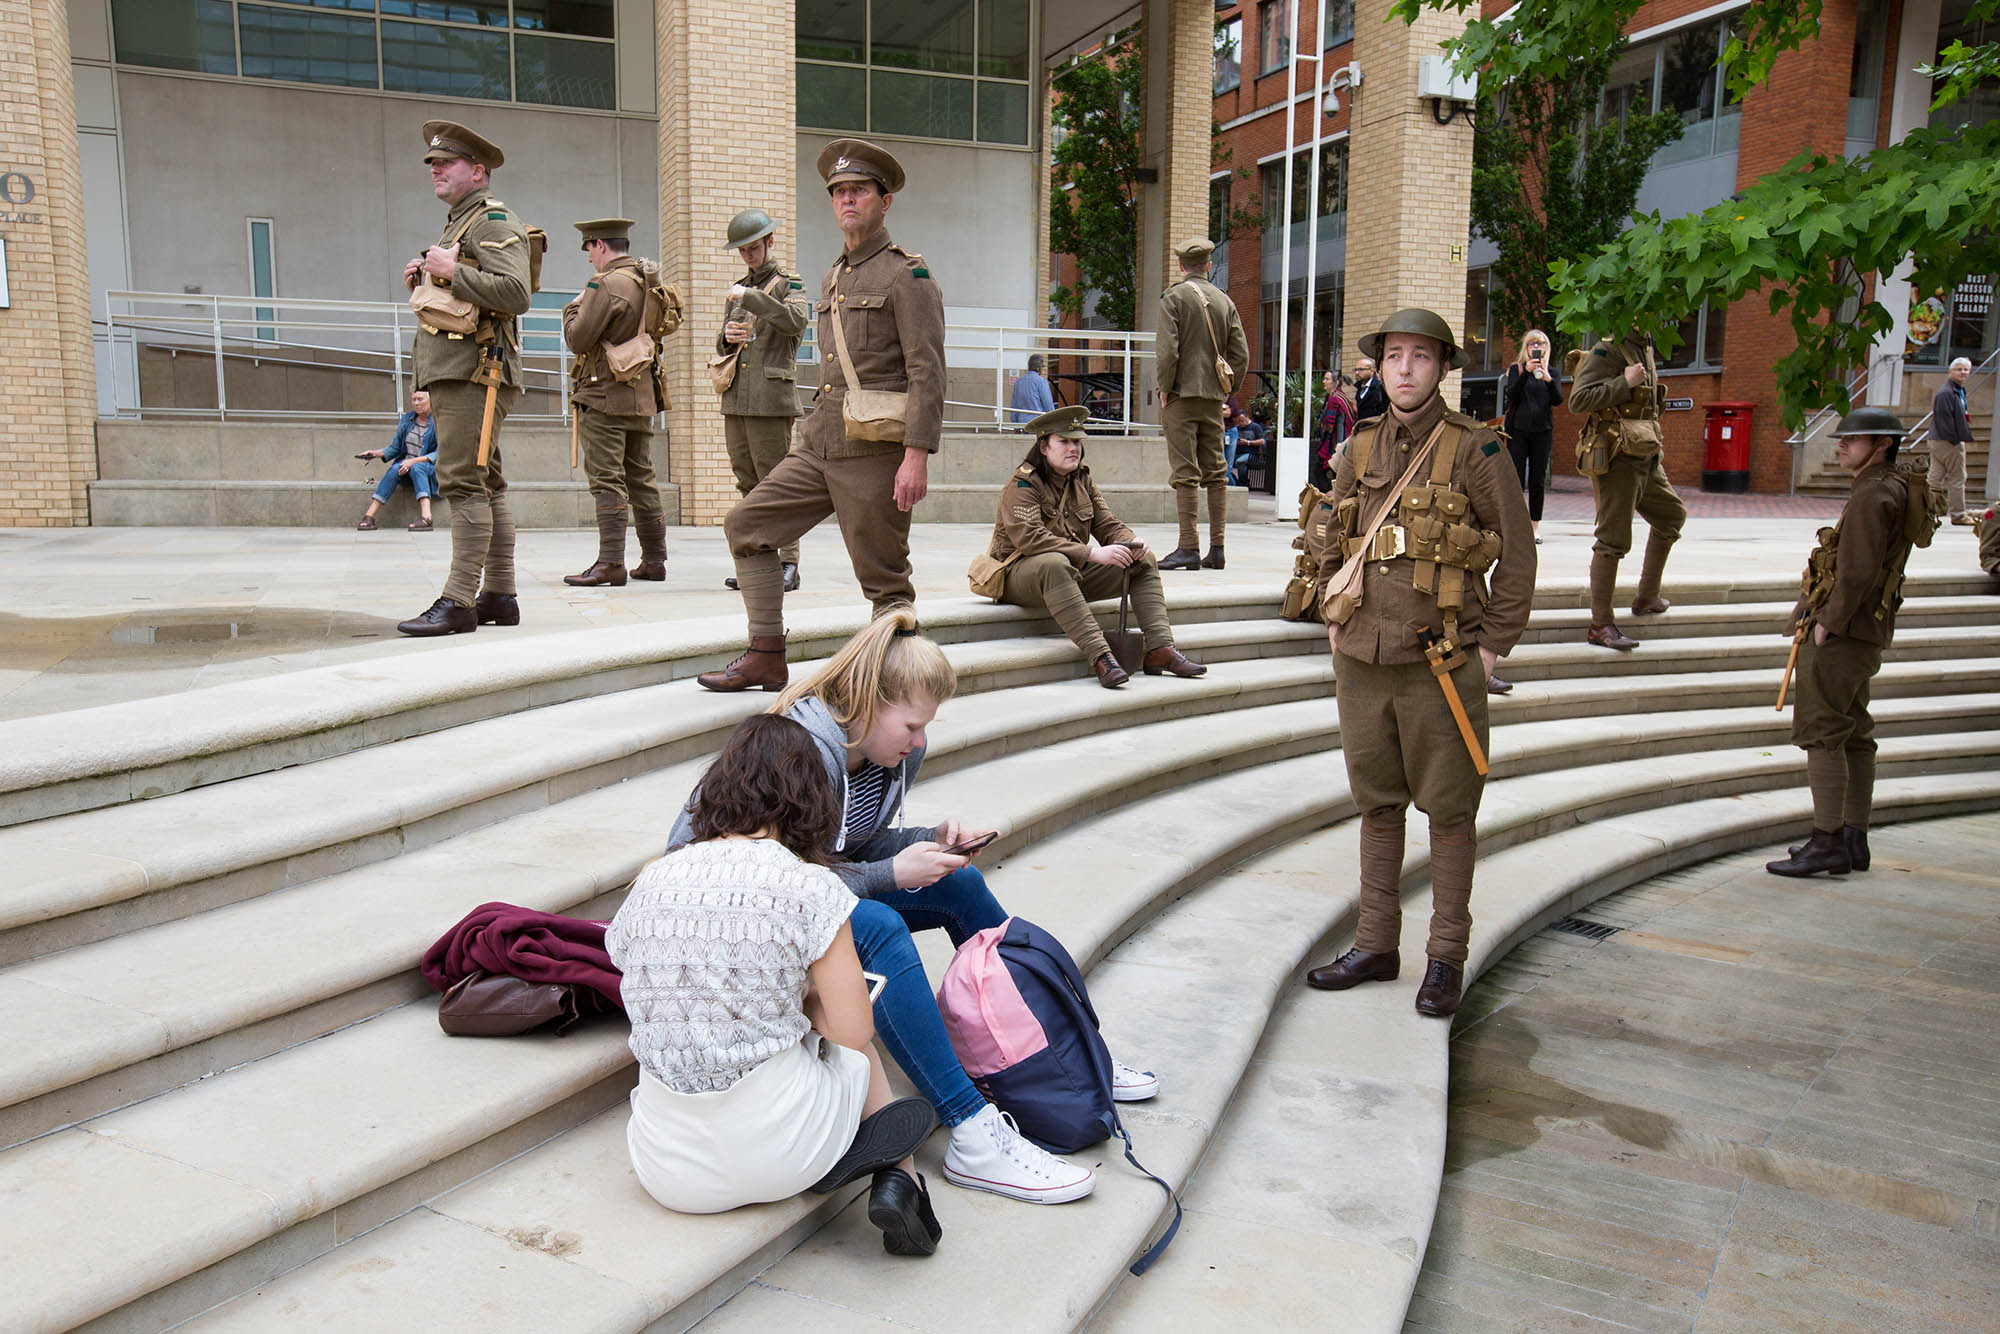 "Artist Jeremy Deller's project ""We're Here Because We're Here"" took place on 1 July 2016. Over 2000 people took part in a national memorial to mark the centenary of the first day of the Battle of the Somme. The participants, representing the shell-shocked fallen soldiers, appeared throughout Britain."